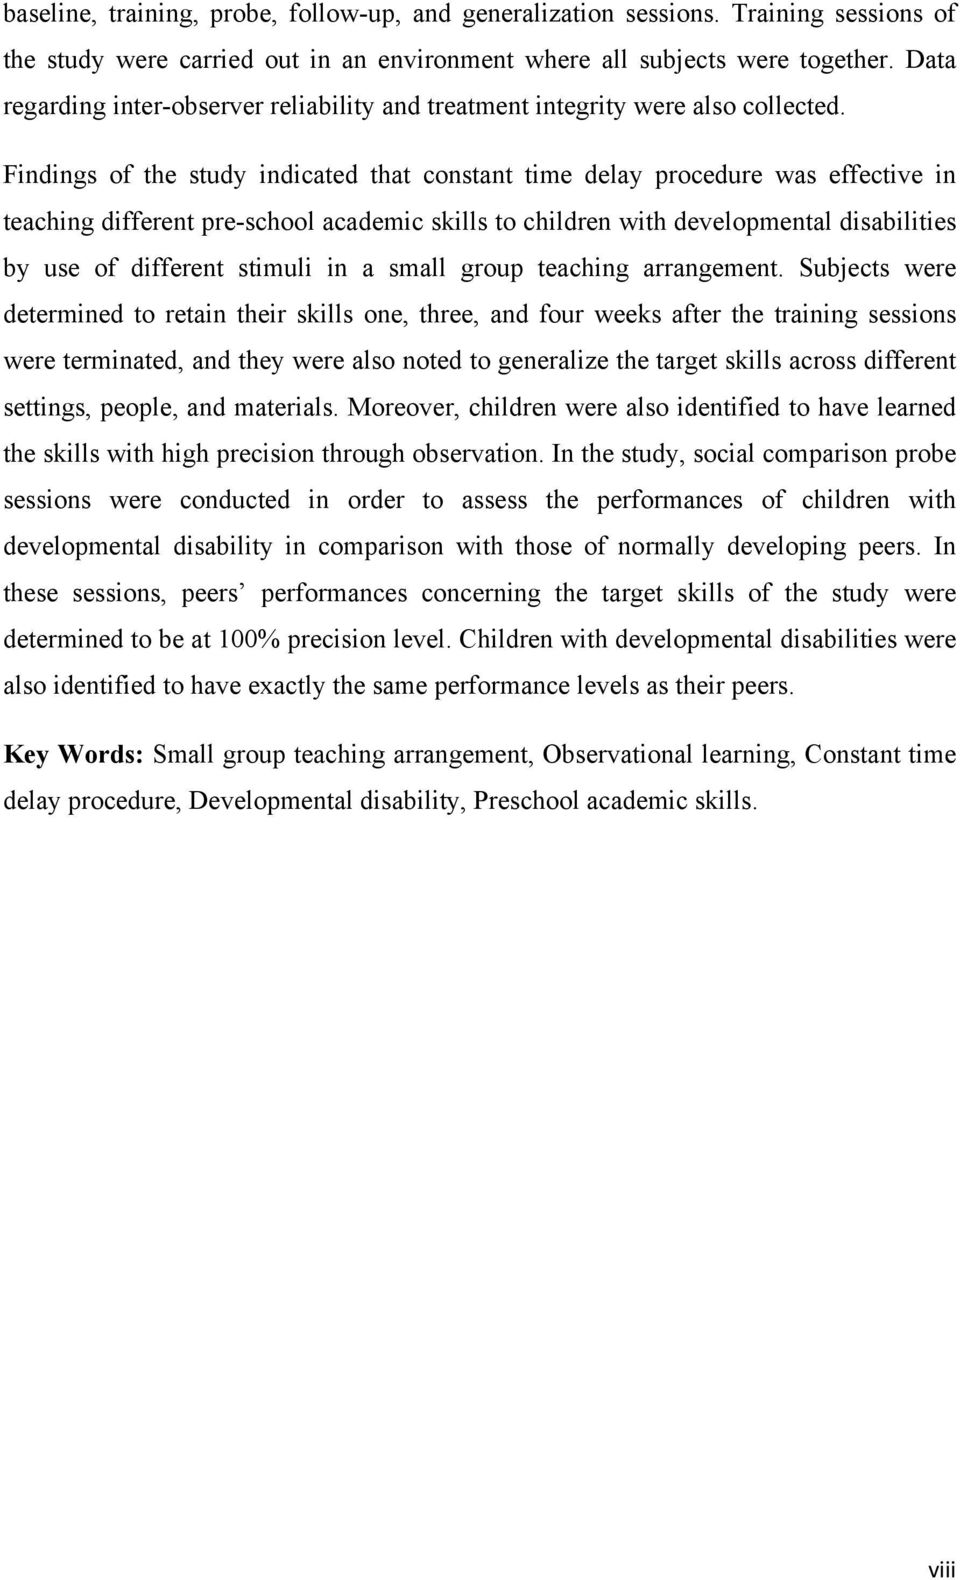 Findings of the study indicated that constant time delay procedure was effective in teaching different pre-school academic skills to children with developmental disabilities by use of different